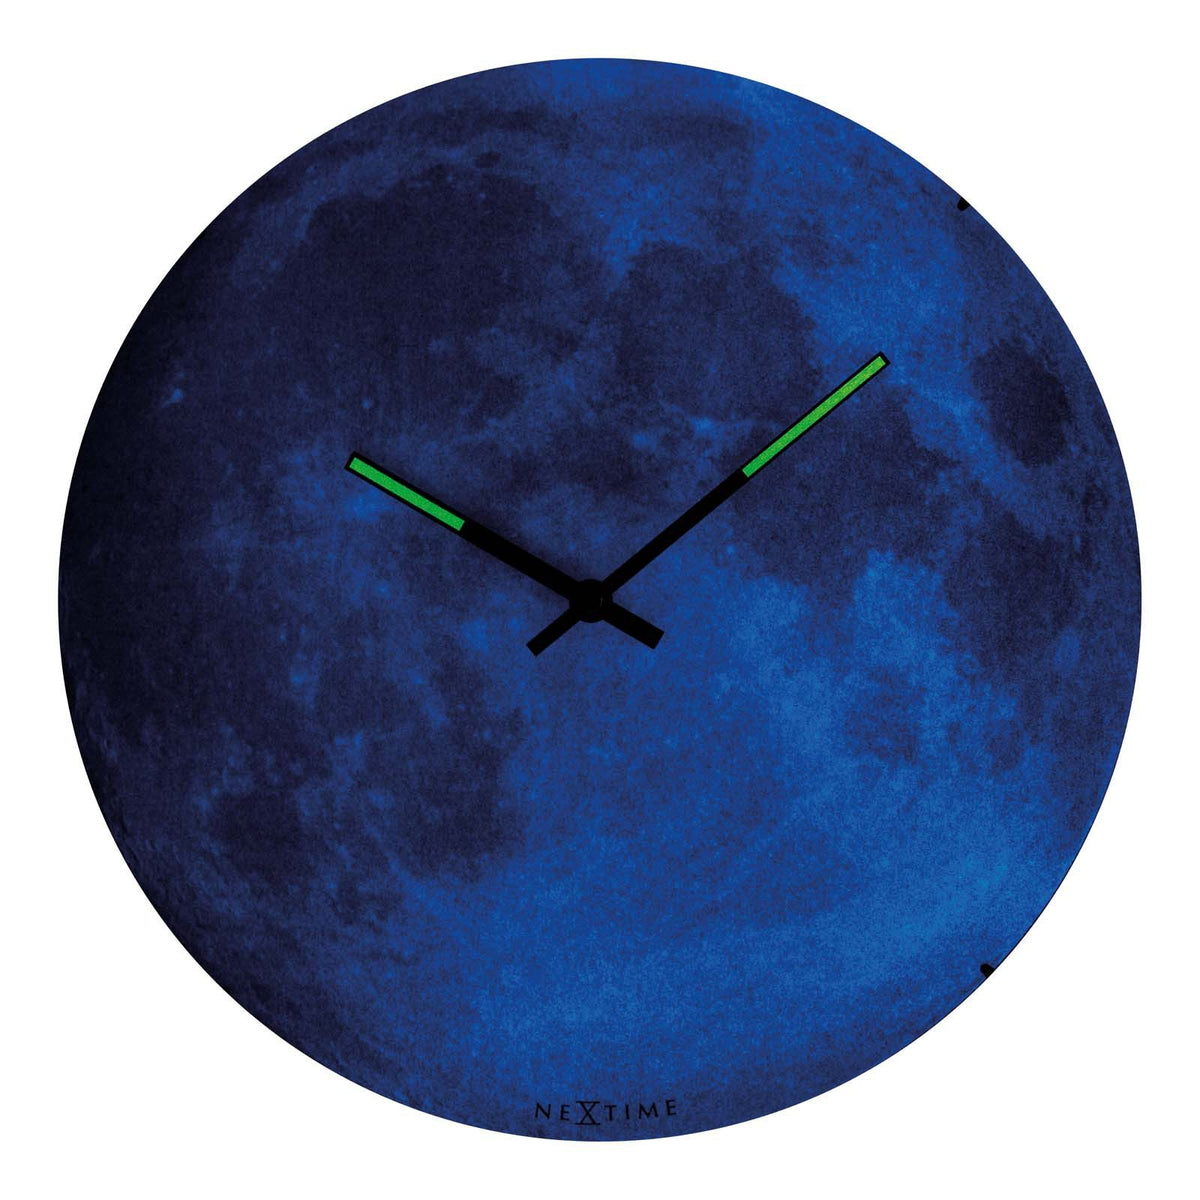 Buy nextime blue moon glass dome glow in the dark wall clock 35cm nextime blue moon glass dome glow in the dark wall clock glowing 30cm 573164 amipublicfo Images